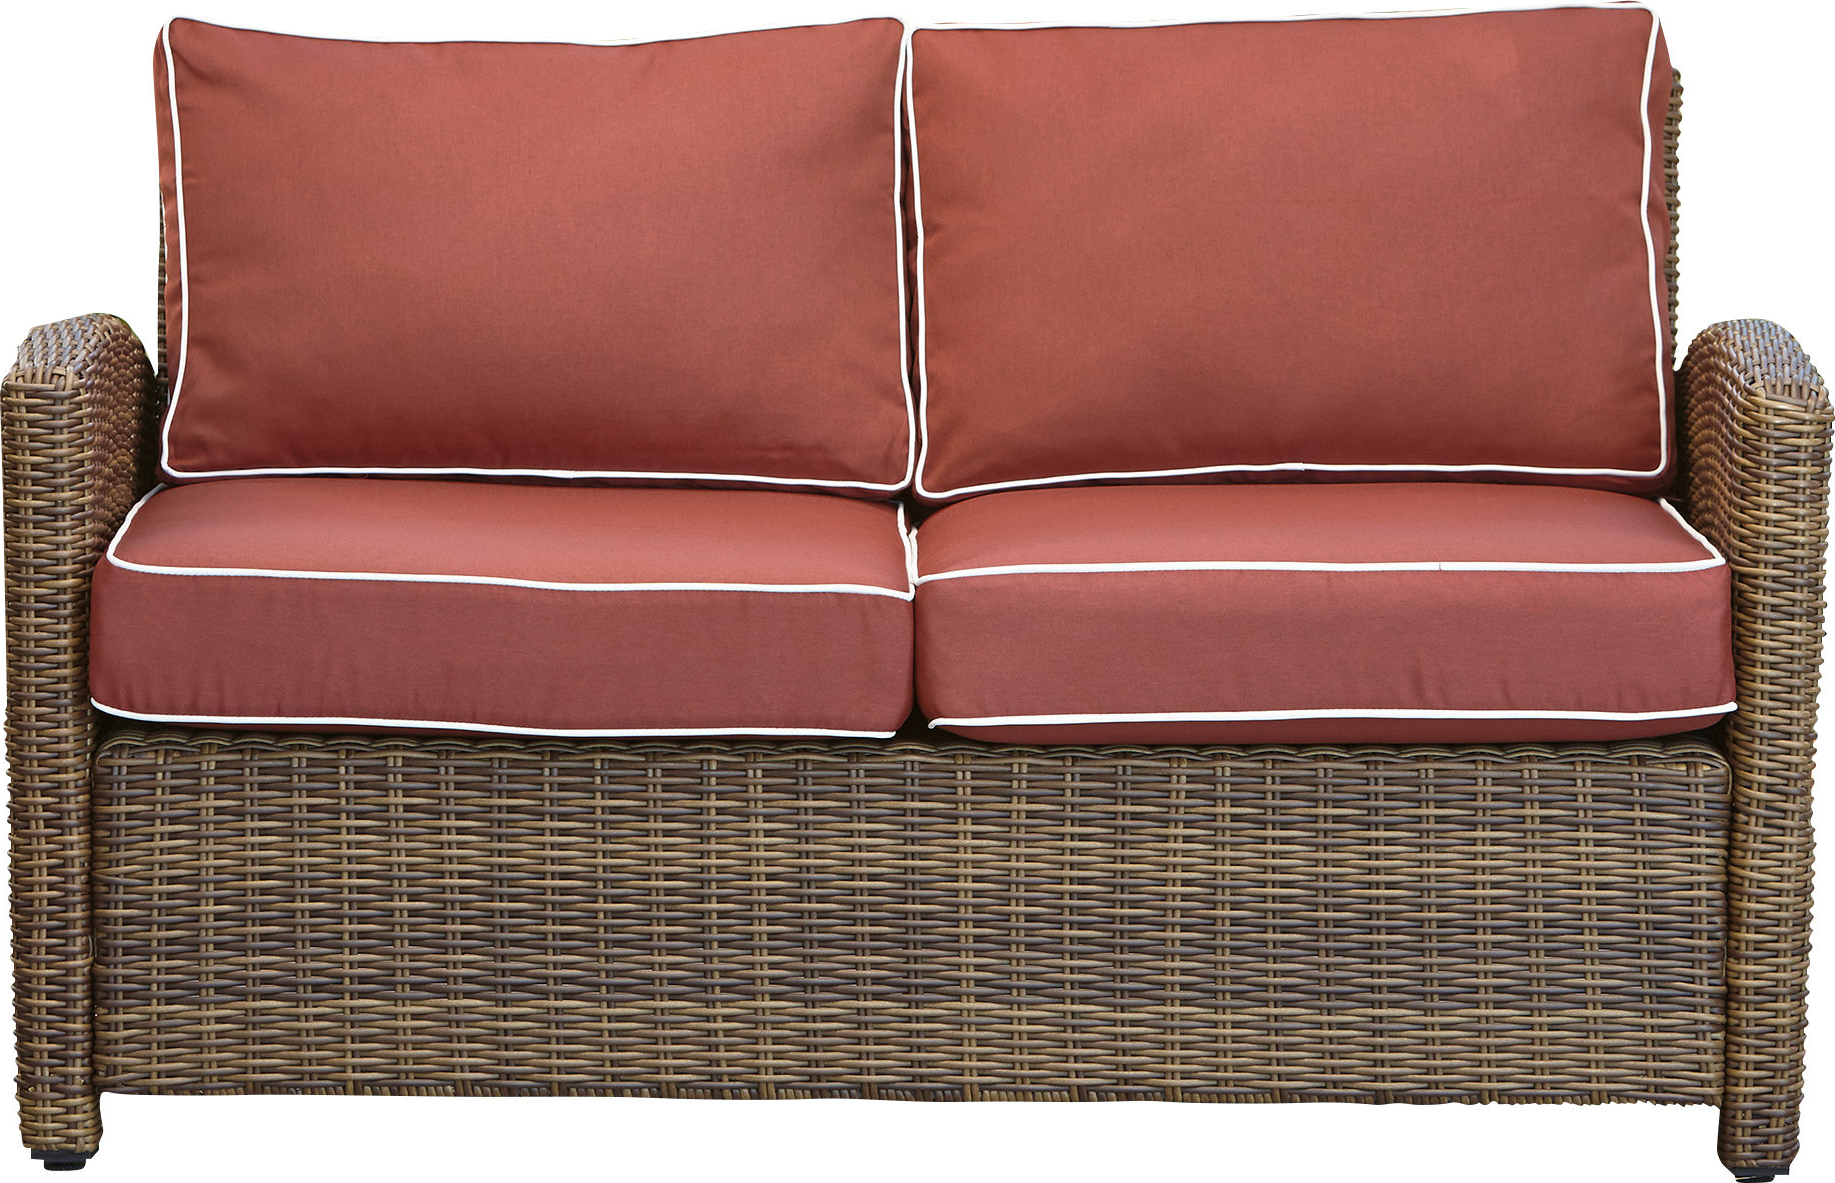 Alburg Loveseats With Cushions For Preferred Lawson Wicker Loveseat With Cushions (View 18 of 25)